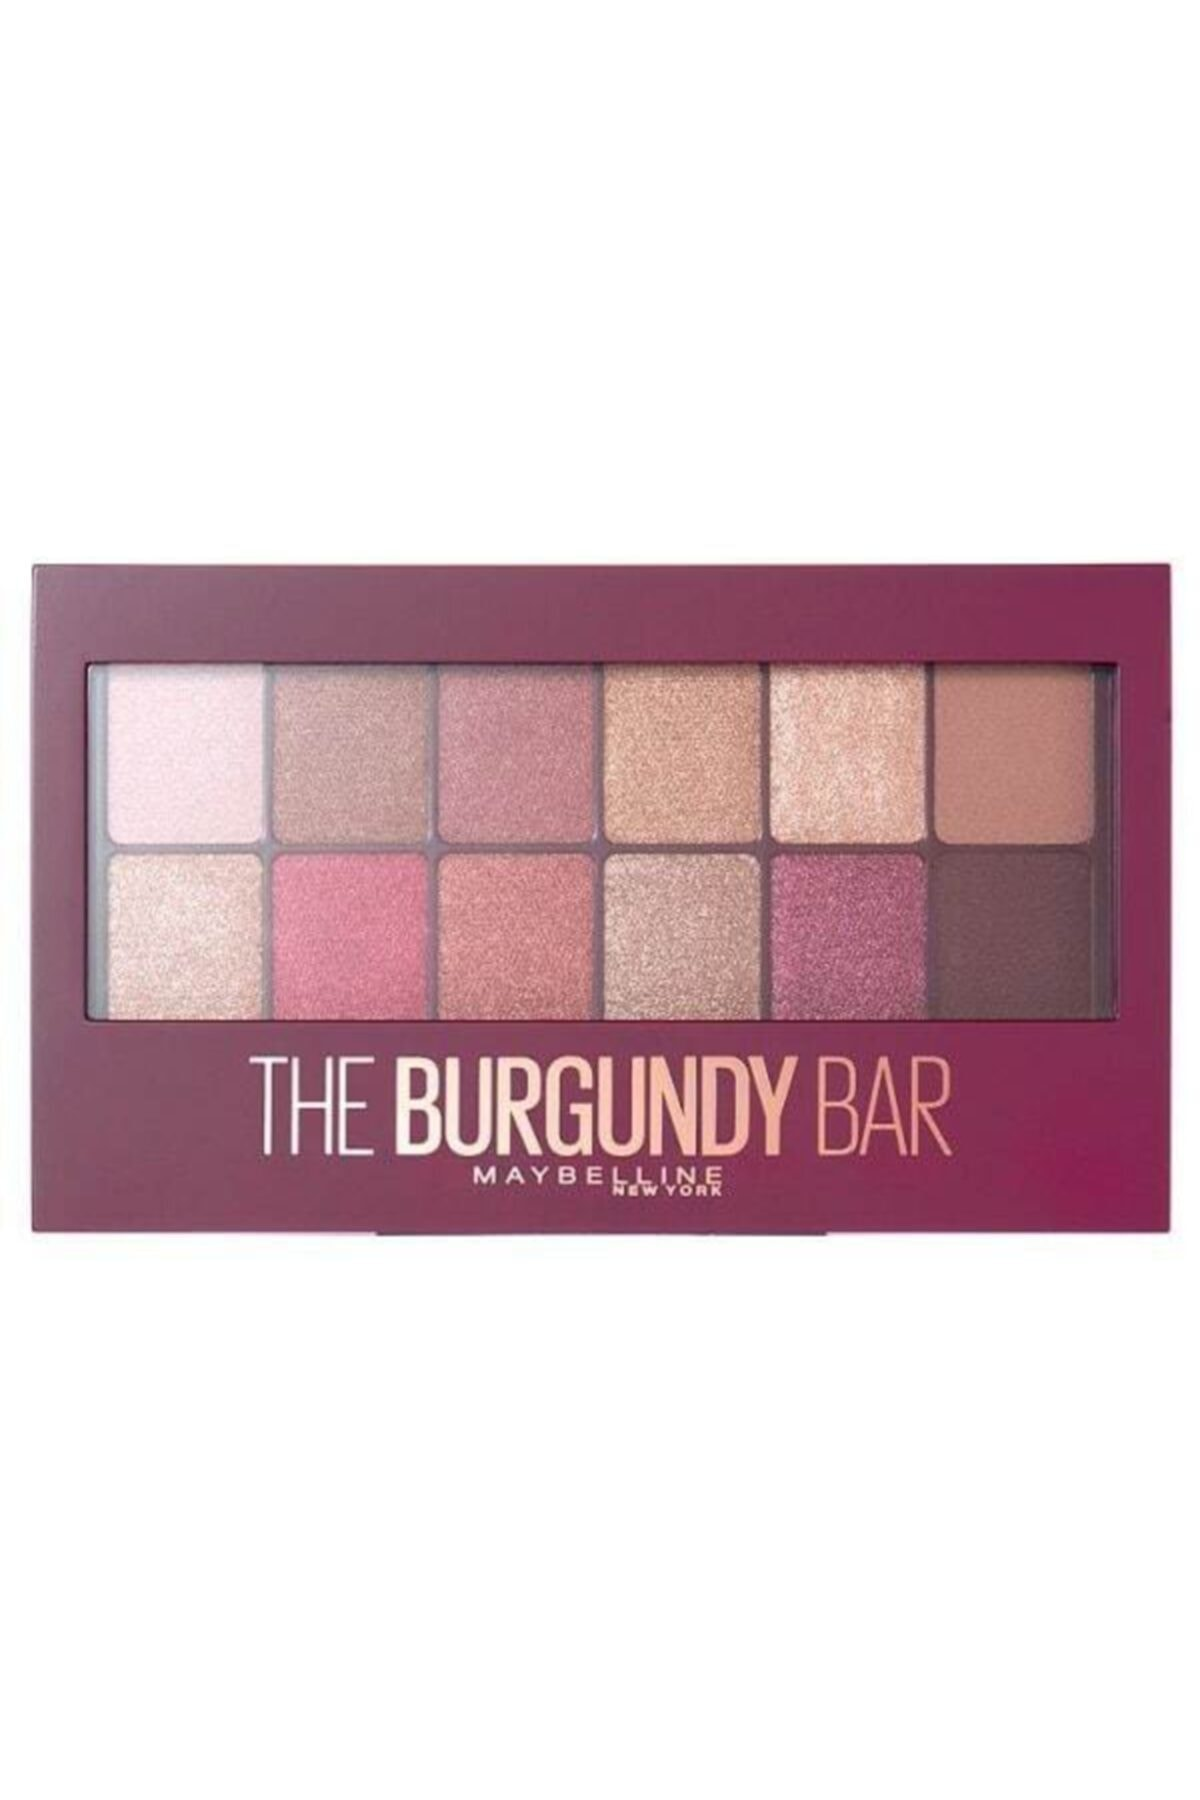 Maybelline New York Göz Farı Paleti - The Burgundy Eye Shadow Palette 3600531429911 1